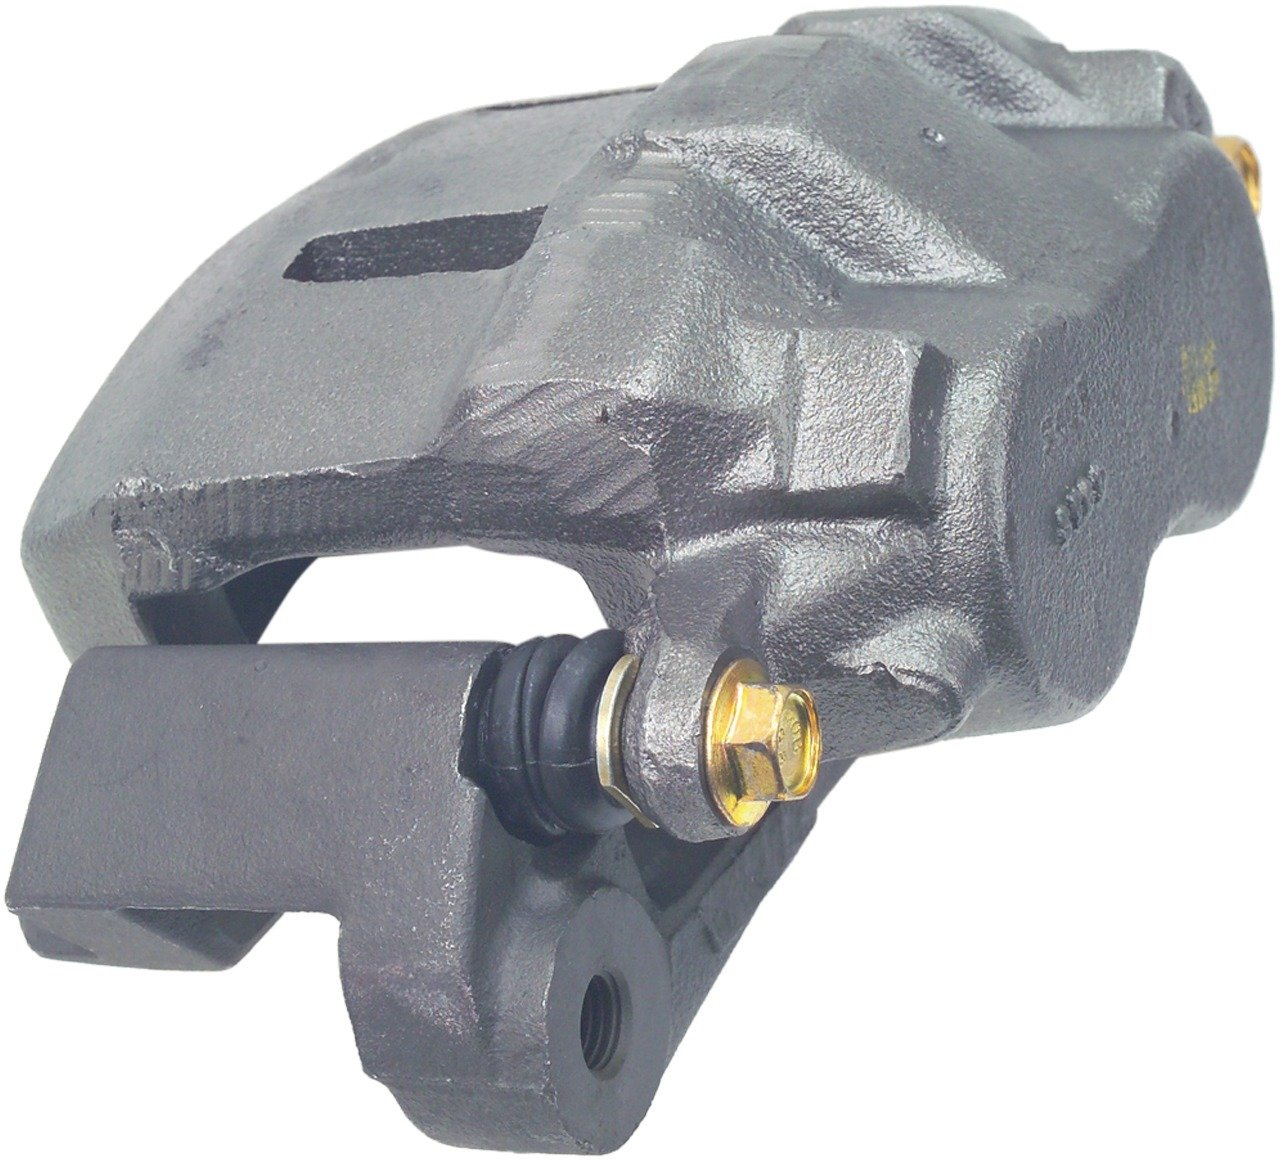 Brake Caliper Unloaded Cardone 18-B4791 Remanufactured Domestic Friction Ready